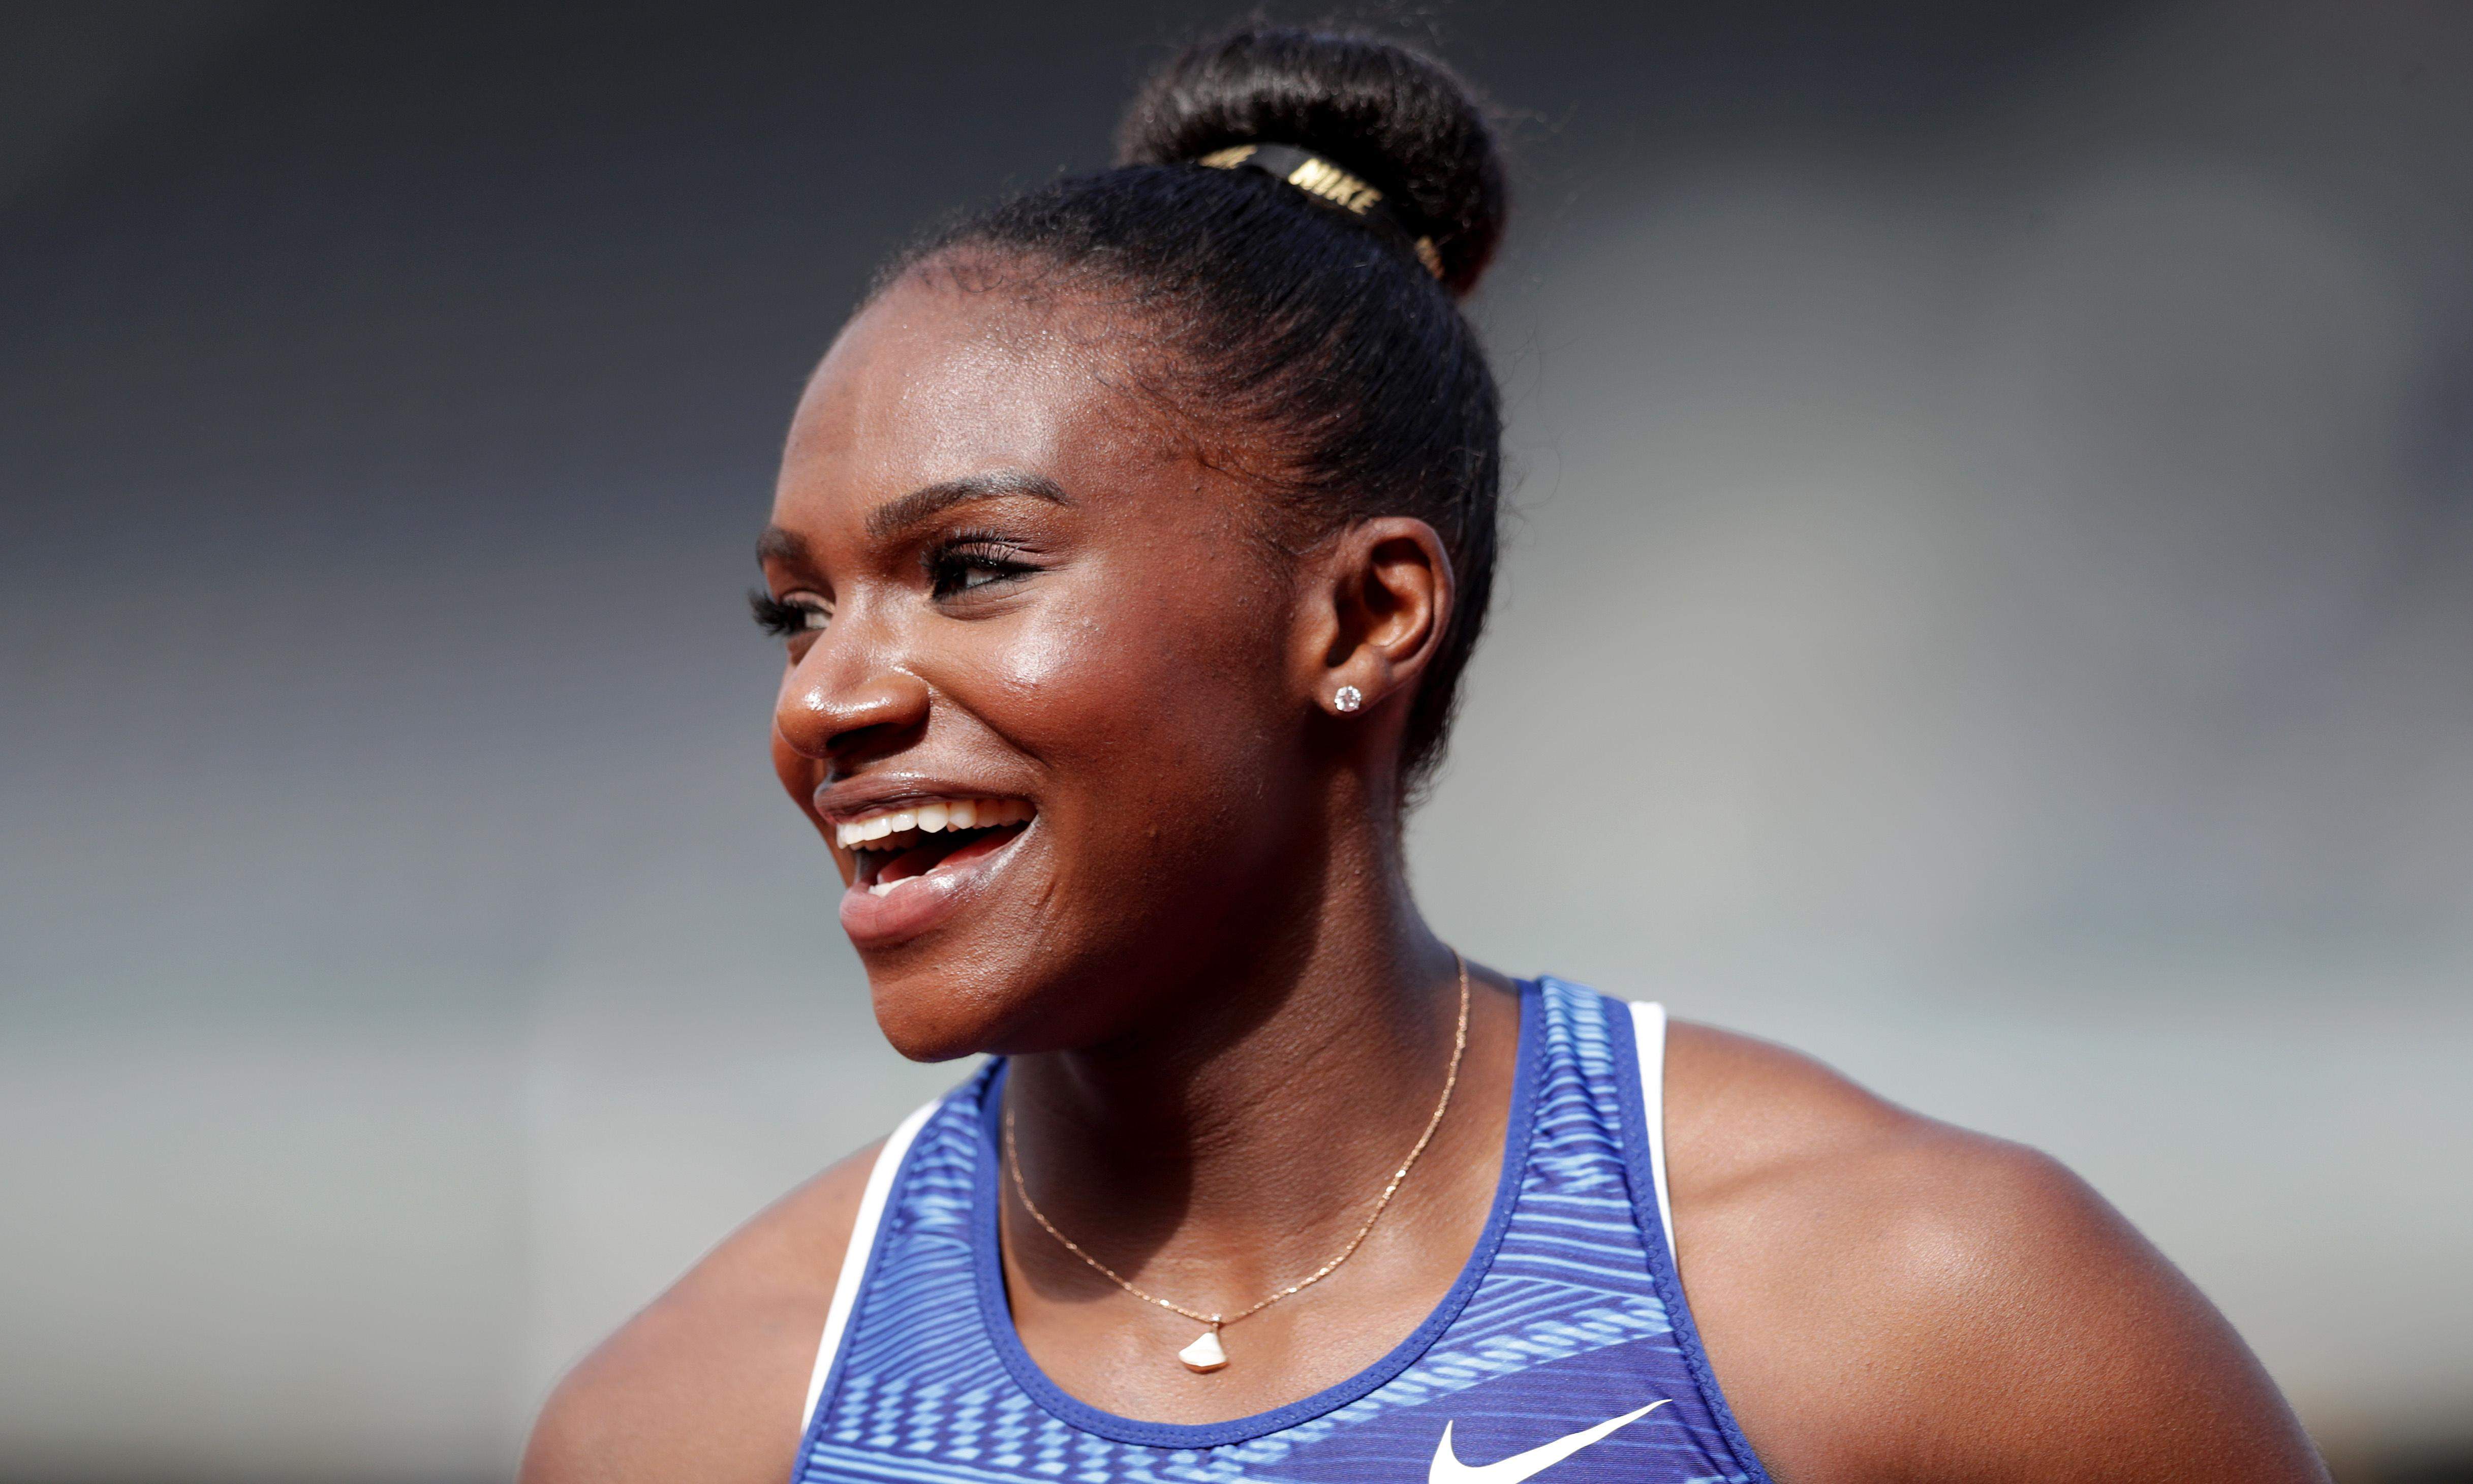 Dina Asher-Smith eager to keep streak going with 100m record at UK trials